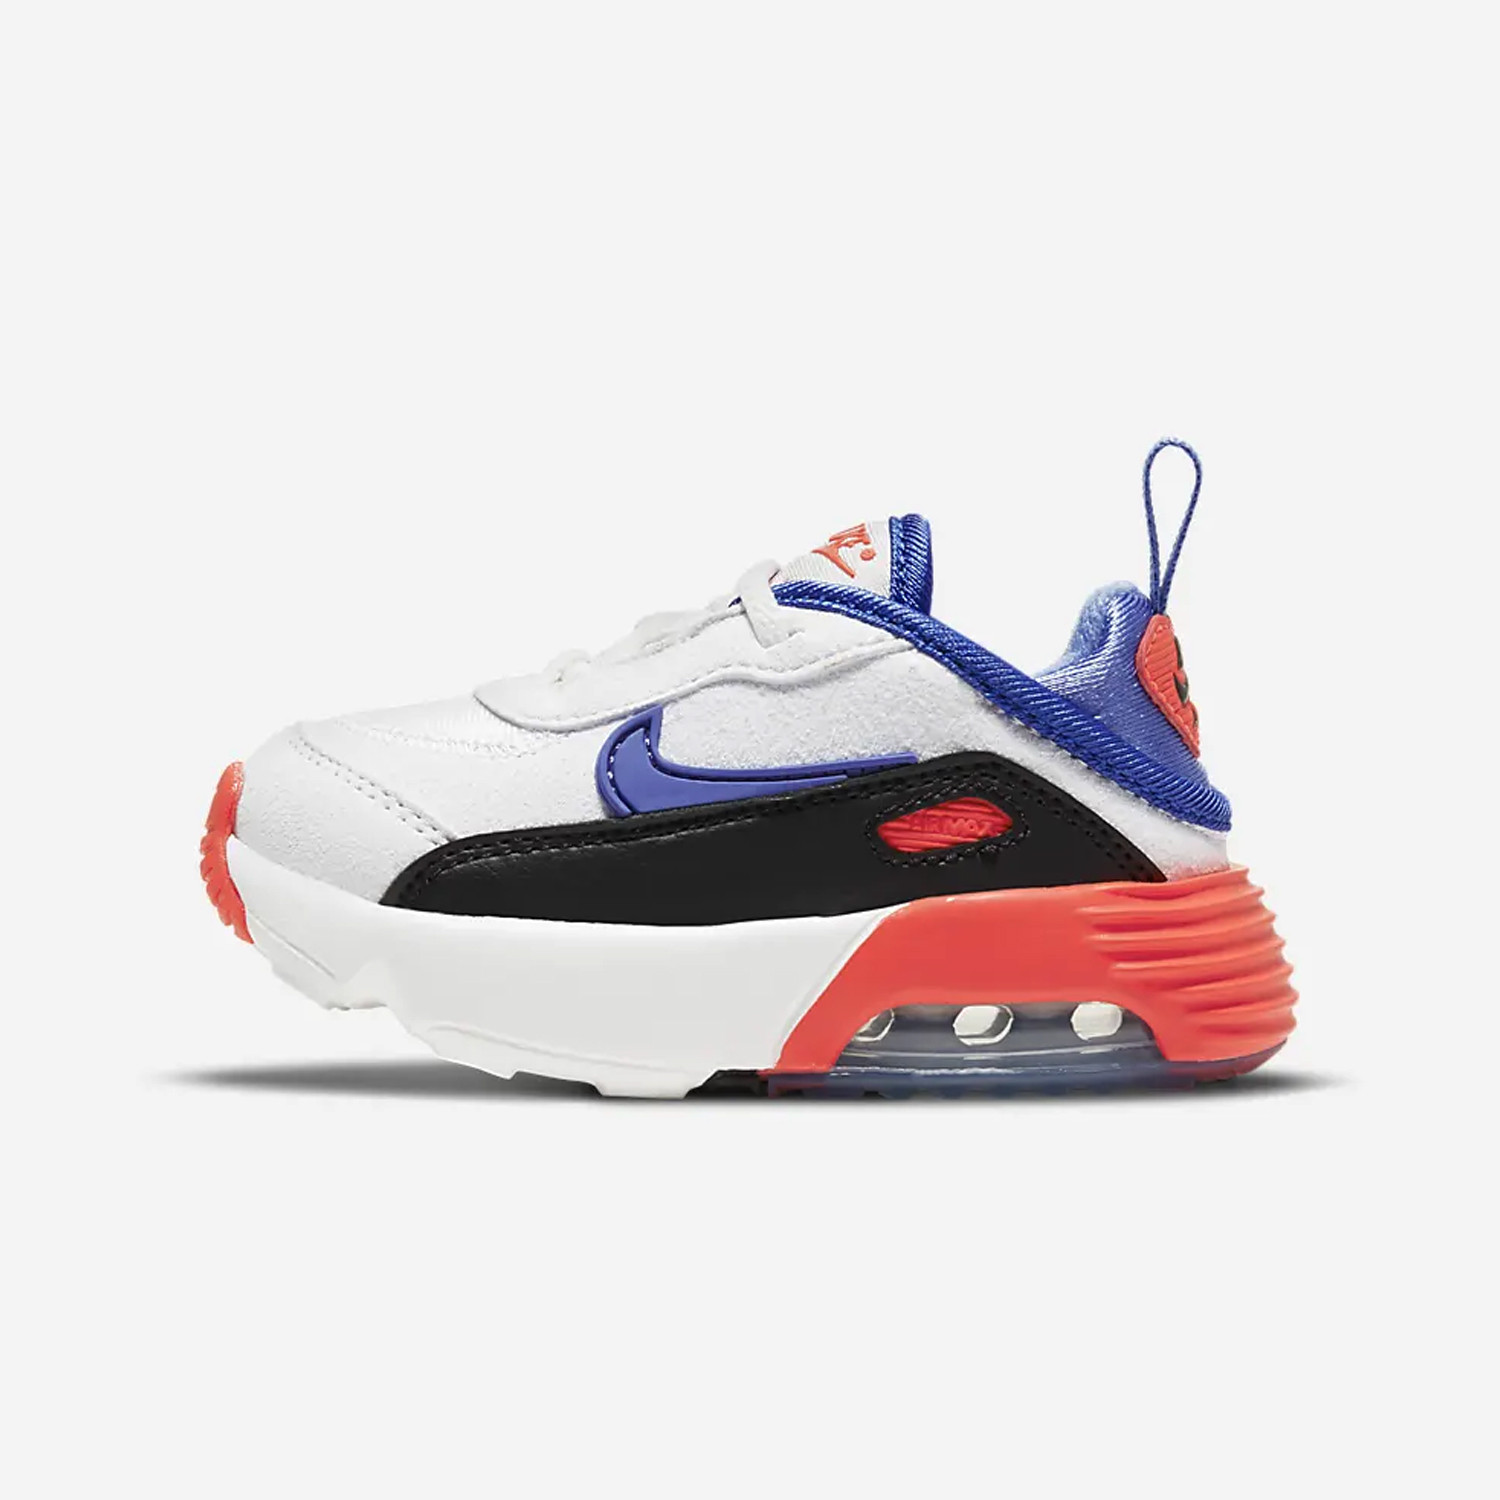 Nike Air Max 2090 EOI Βρεφικά Παπούτσια (9000069474_50477)